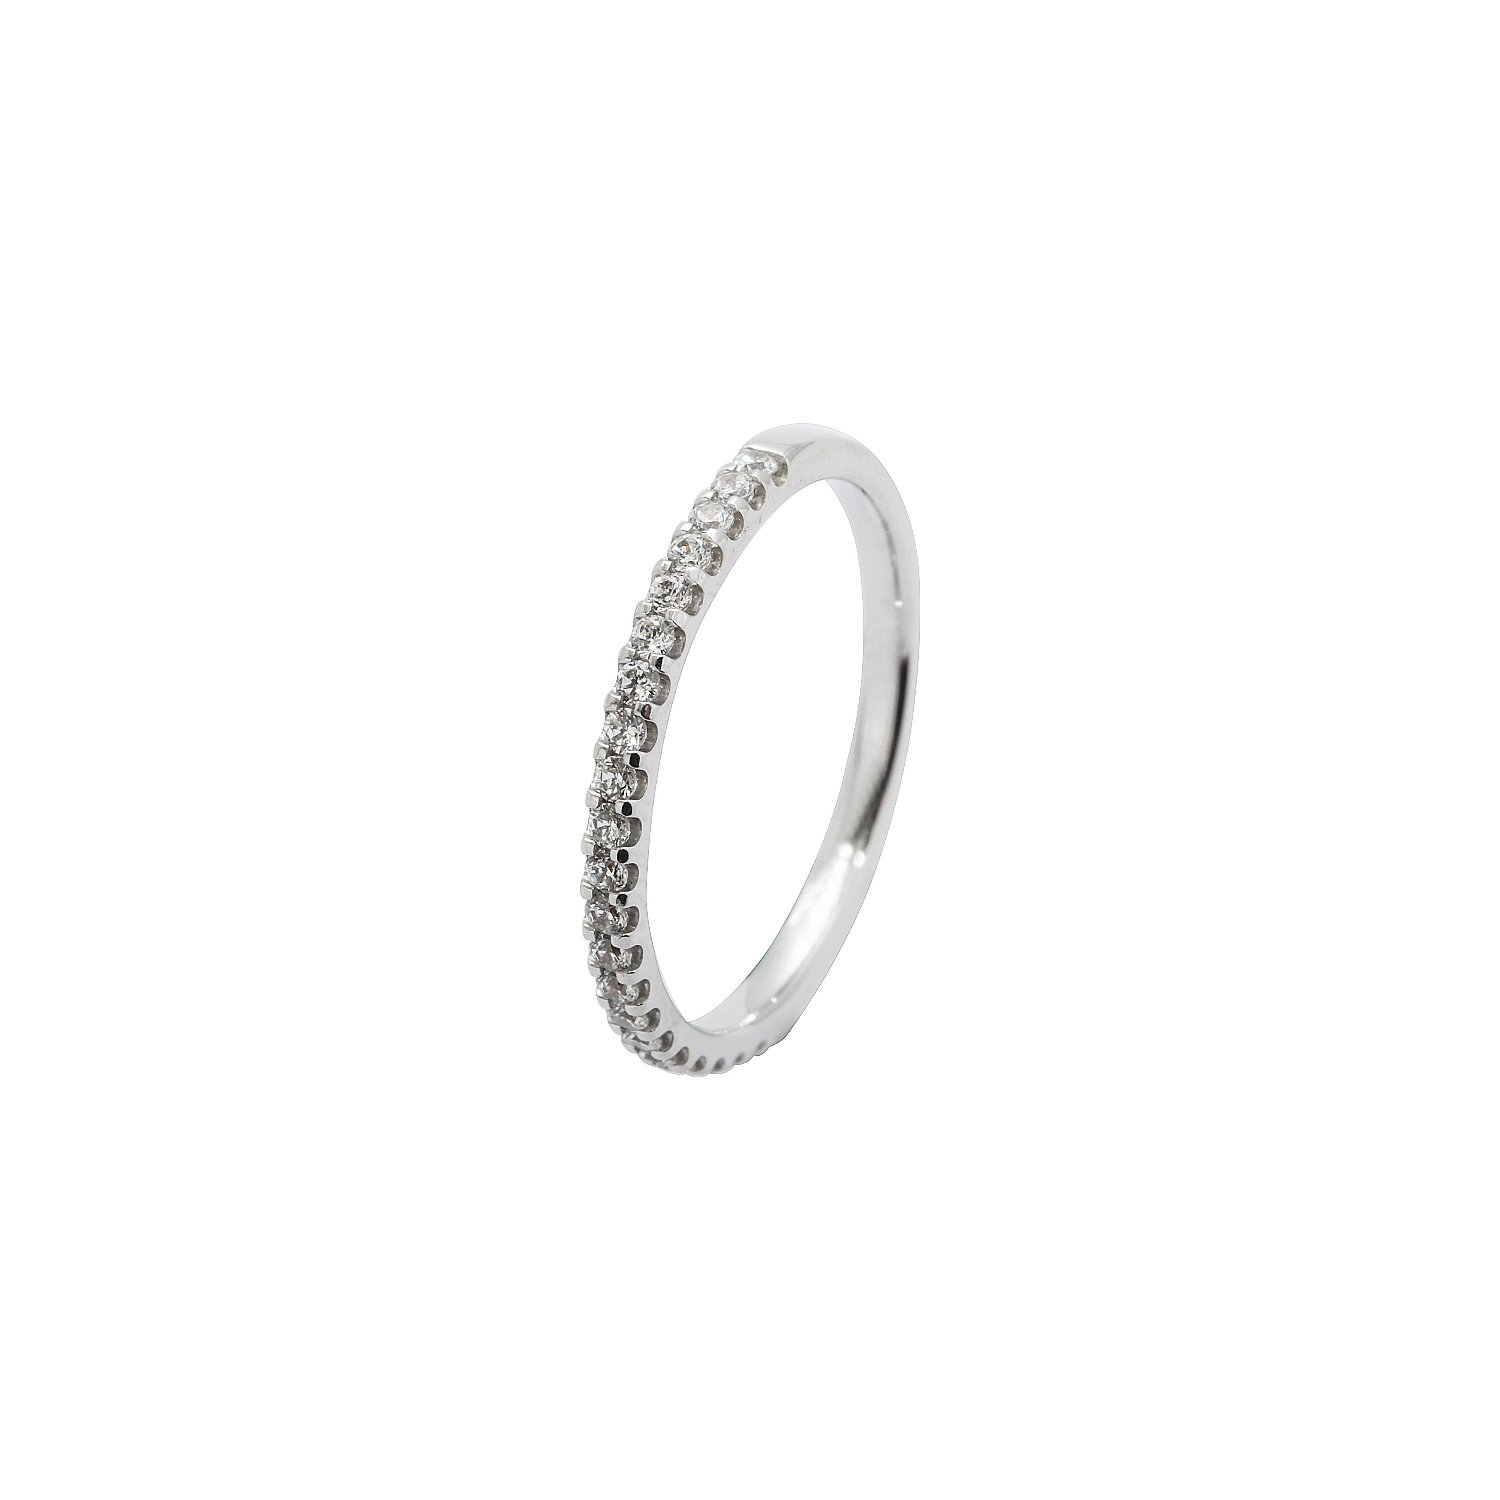 Alliance demi tour en or blanc et diamants de 0.25ct